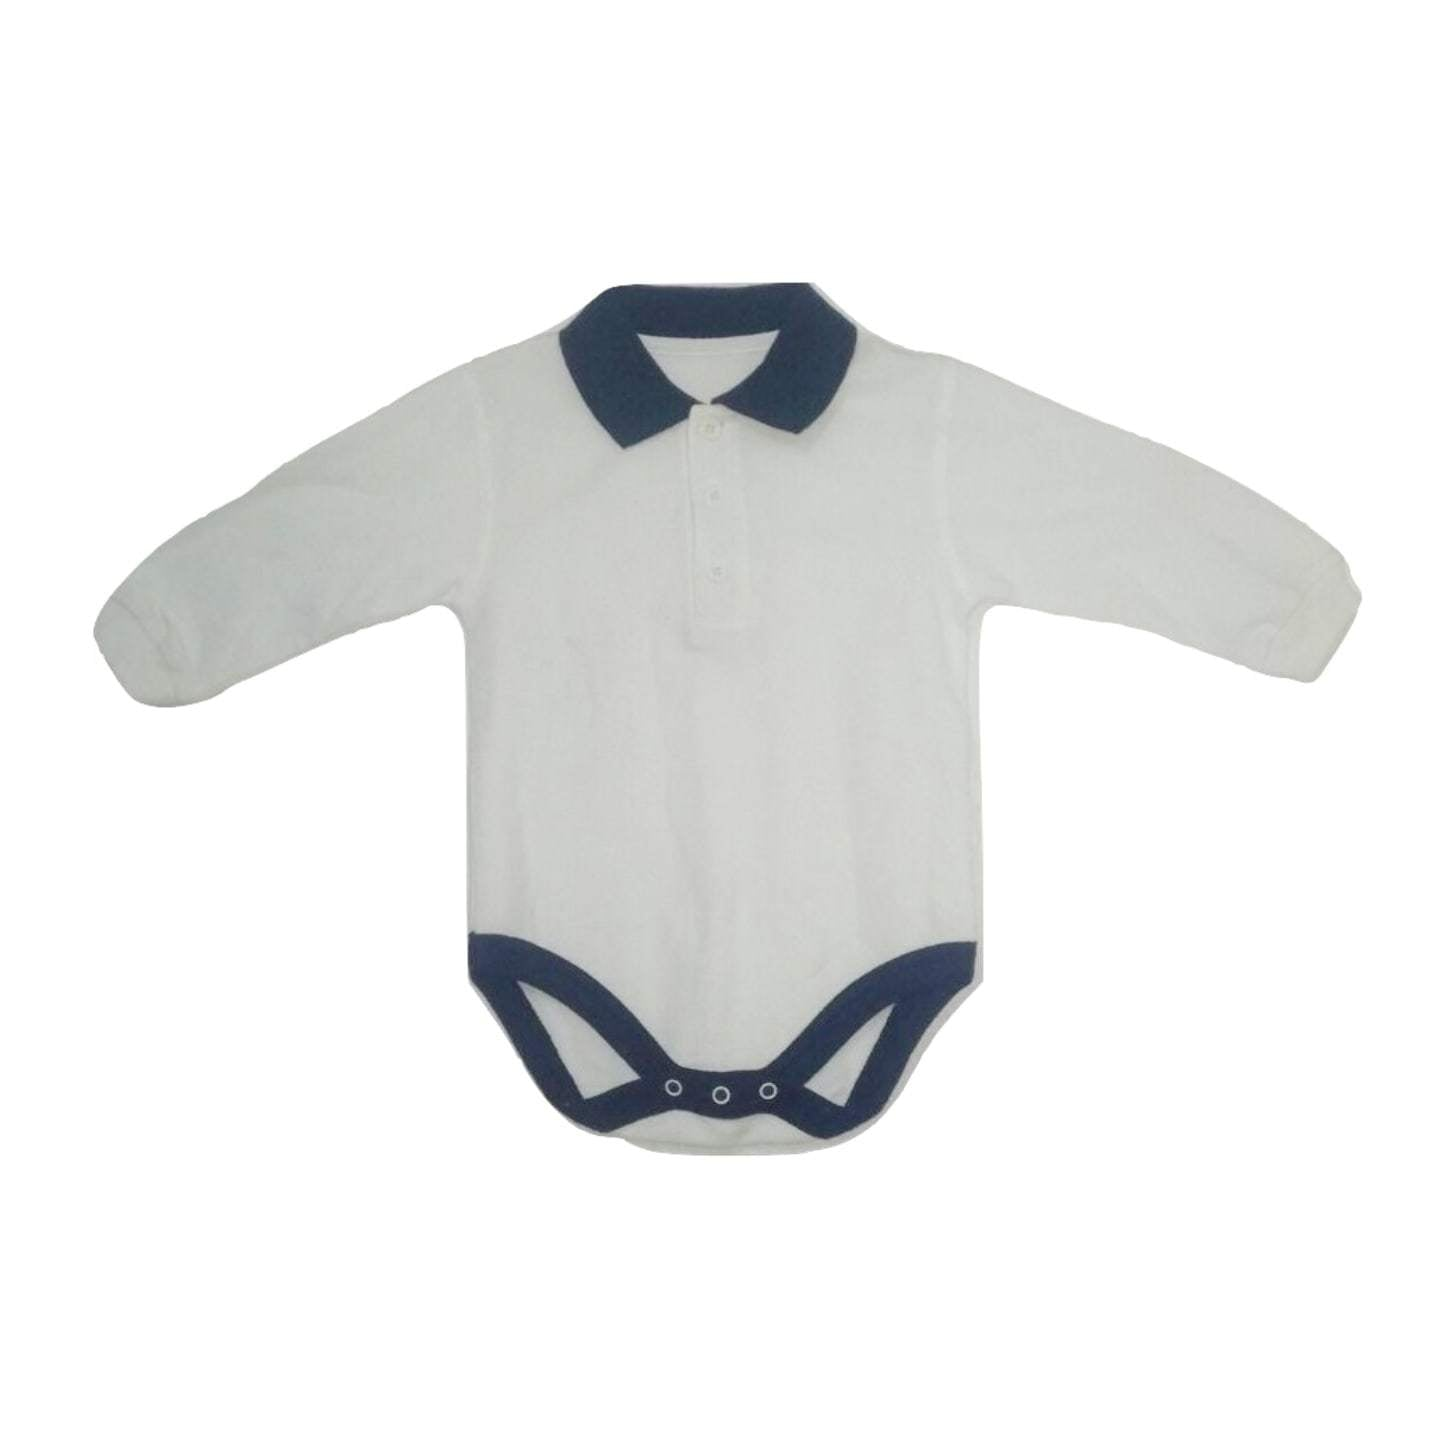 Longsleeve White with Navy Collar detail Rugby Bodysuit - Stockpoint Apparel Outlet